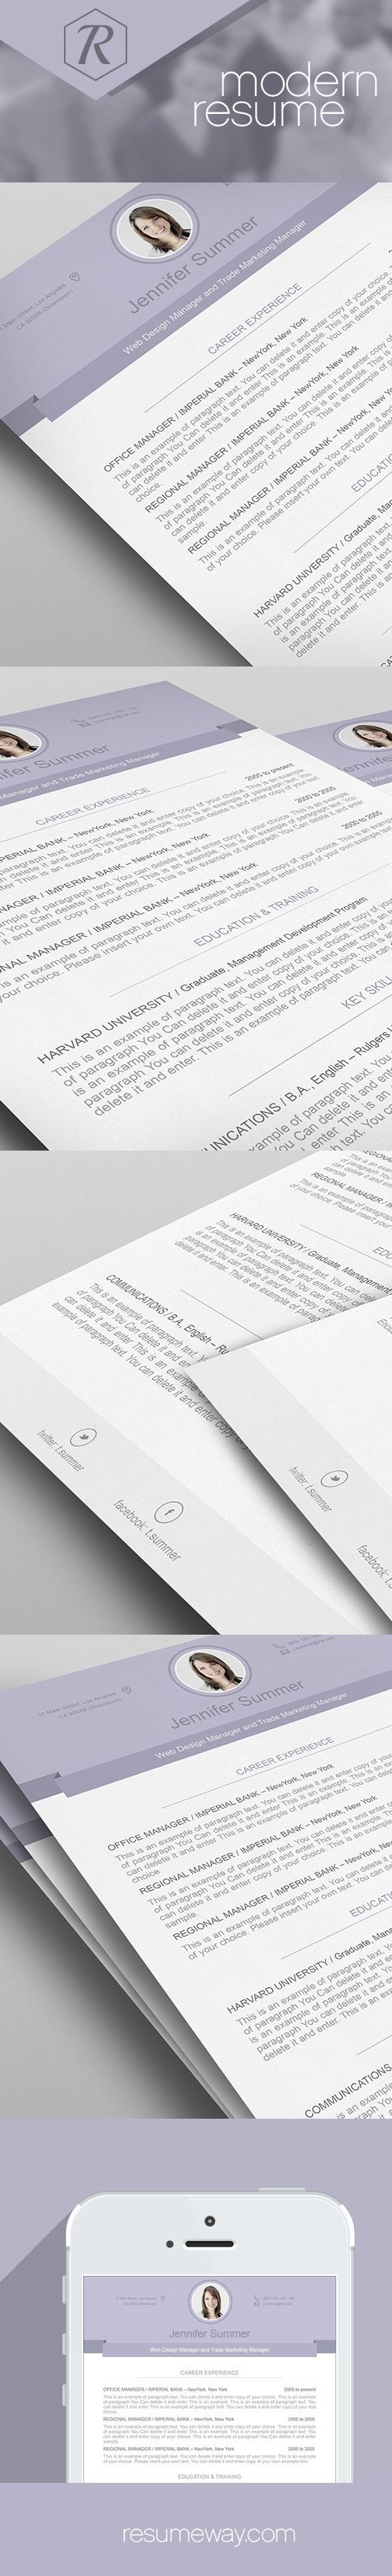 modern resume template 110490 premium line of resume cover letter templates edit